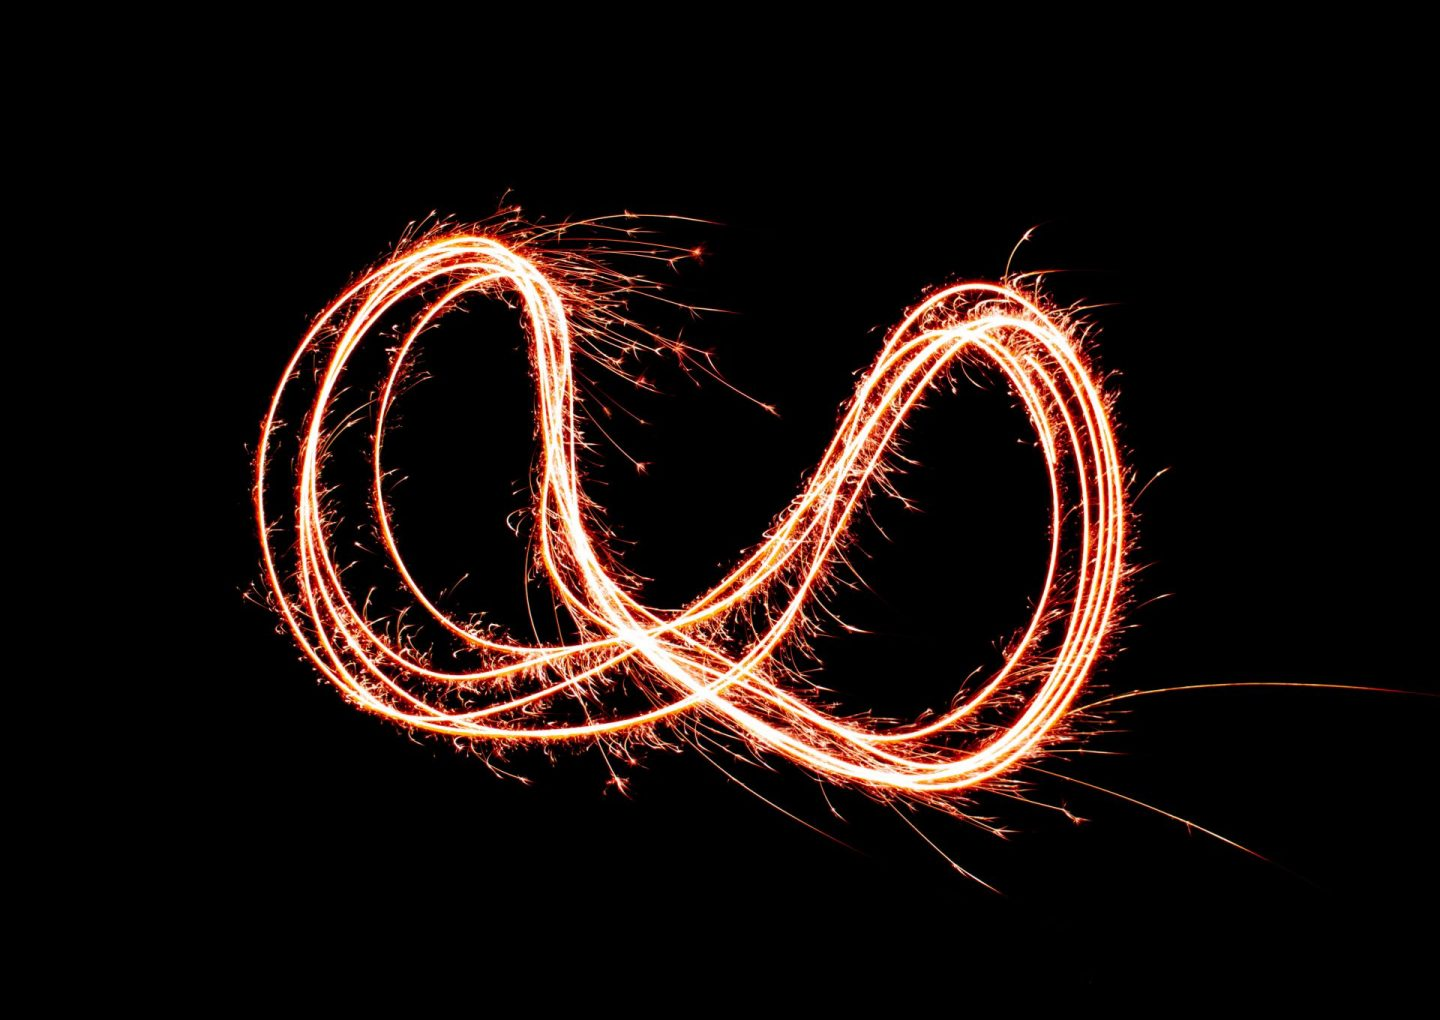 Long exposure photograph of a figure of eight taken using a sparkler. Lockdown Number 2 gave ma a chance to practise my photography.